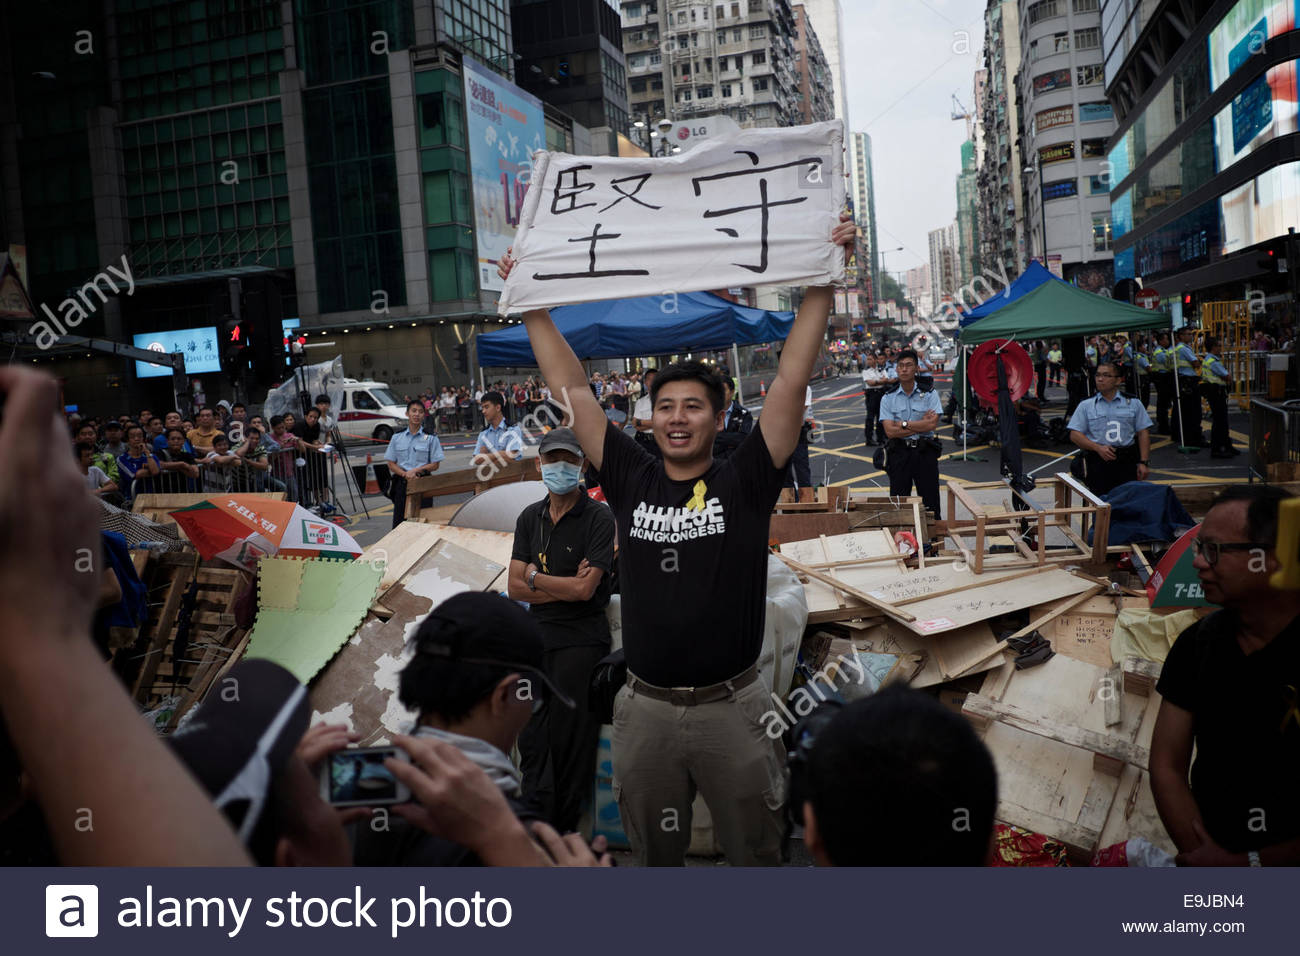 Andy Yung Wai-Yib or 'Captain America' holds a banner that reads 'Stay Strong' in front of a supportive - Stock Image